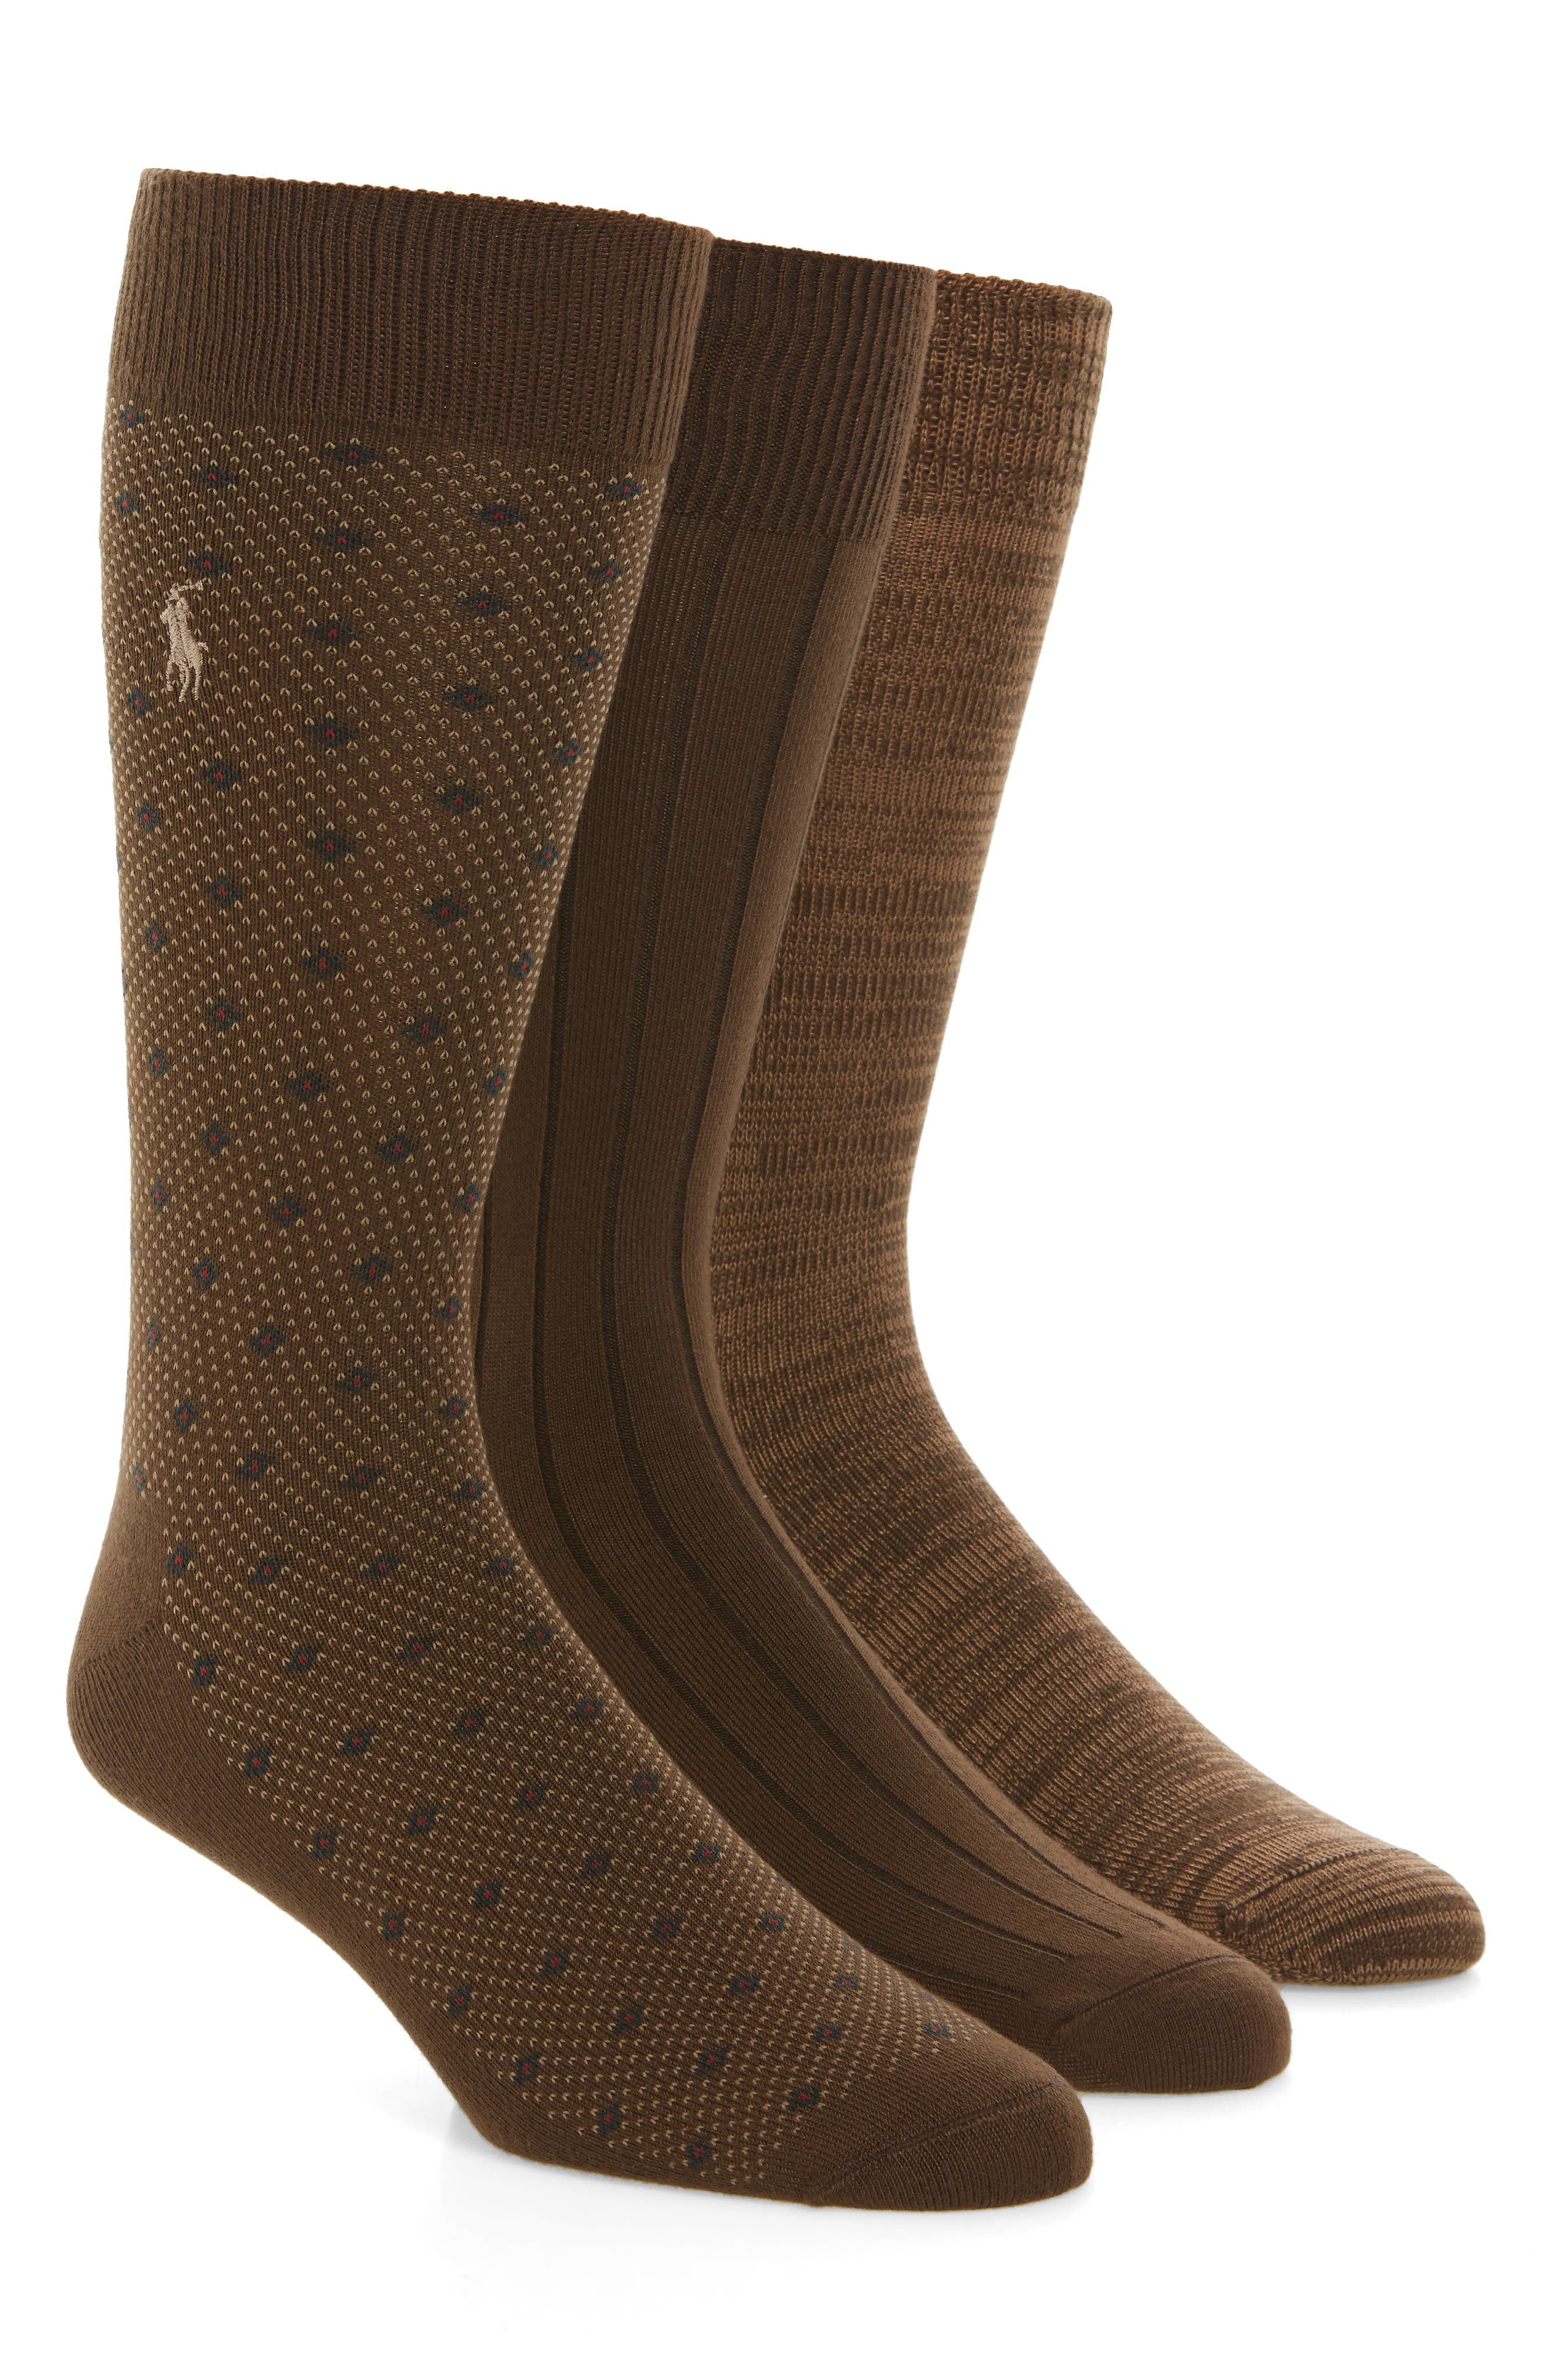 Supersoft Diamond Dot Assorted 3-Pack Socks,                         Main,                         color, Tobacco